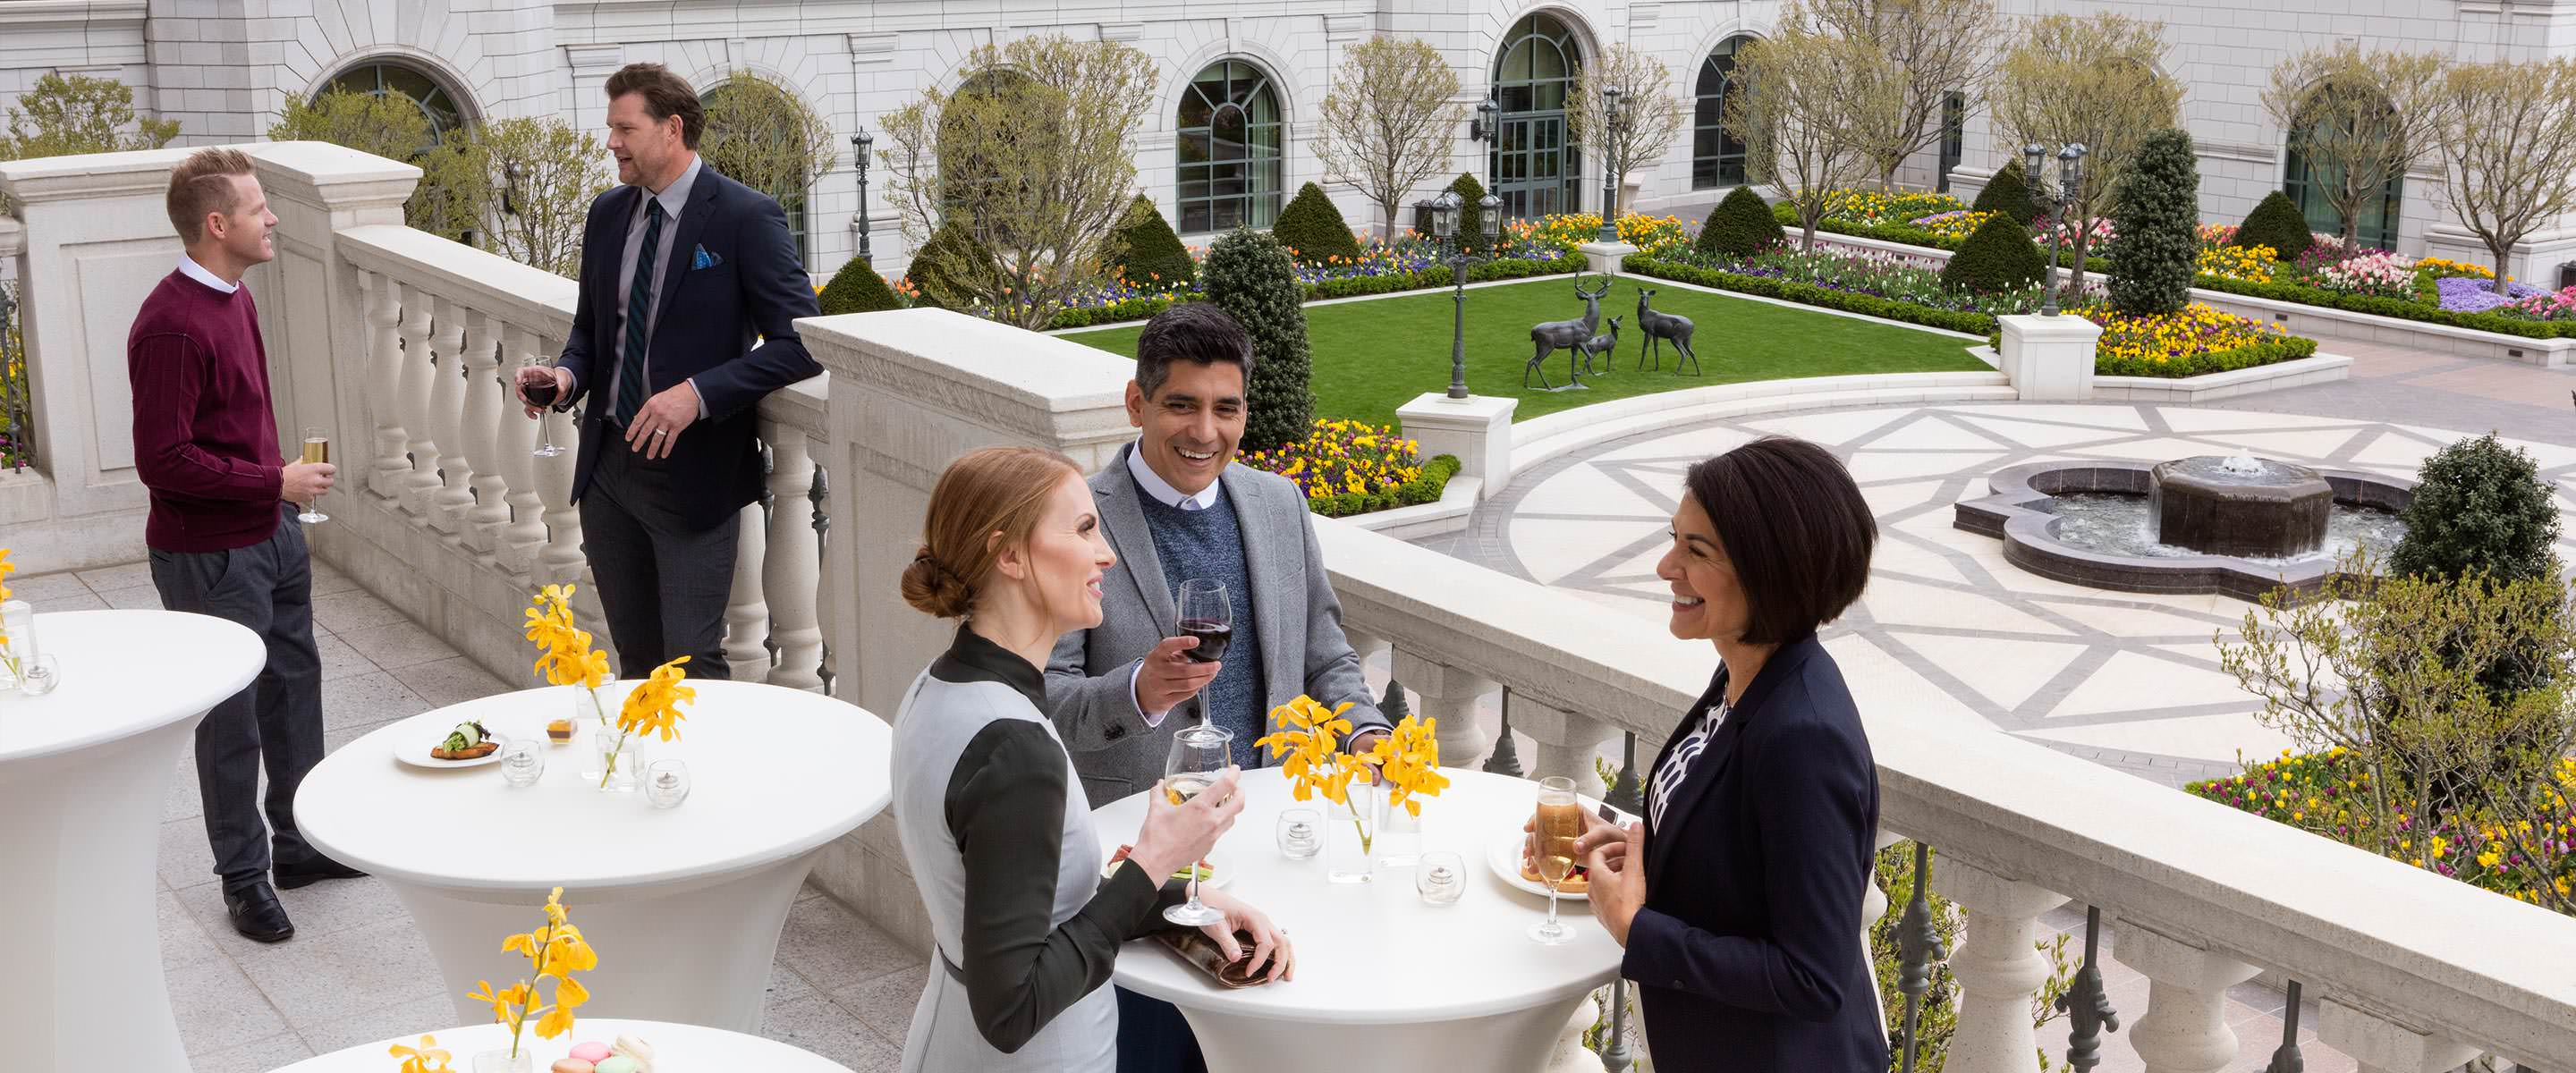 Group of business colleagues at a reception talking and drinking cocktails on the balcony of the third-floor event space at The Grand America Hotel.